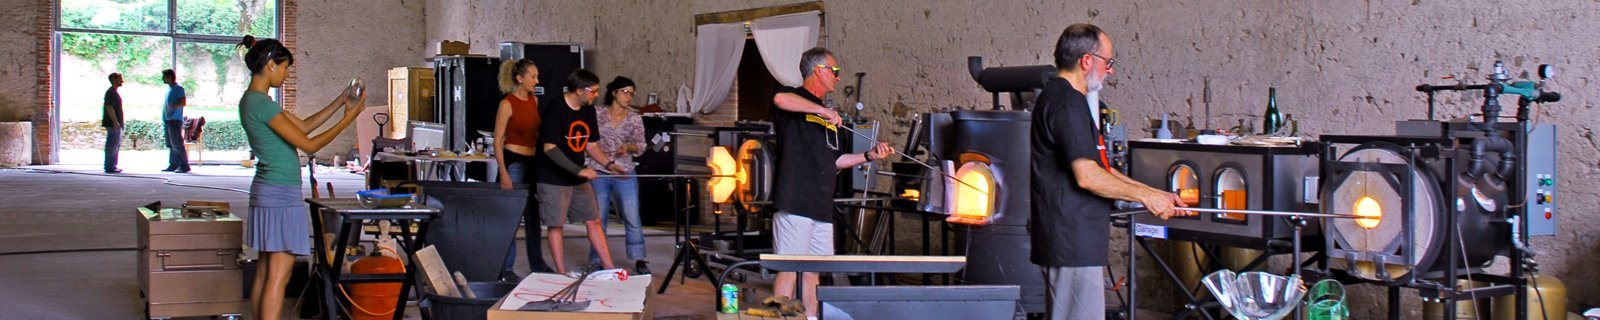 The UltraLight Hotshop is a modular group of highly portable units that can be arranged to meet the needs of individual venues or events. The set-up requires minimal utility support and can include a flameworking unit.